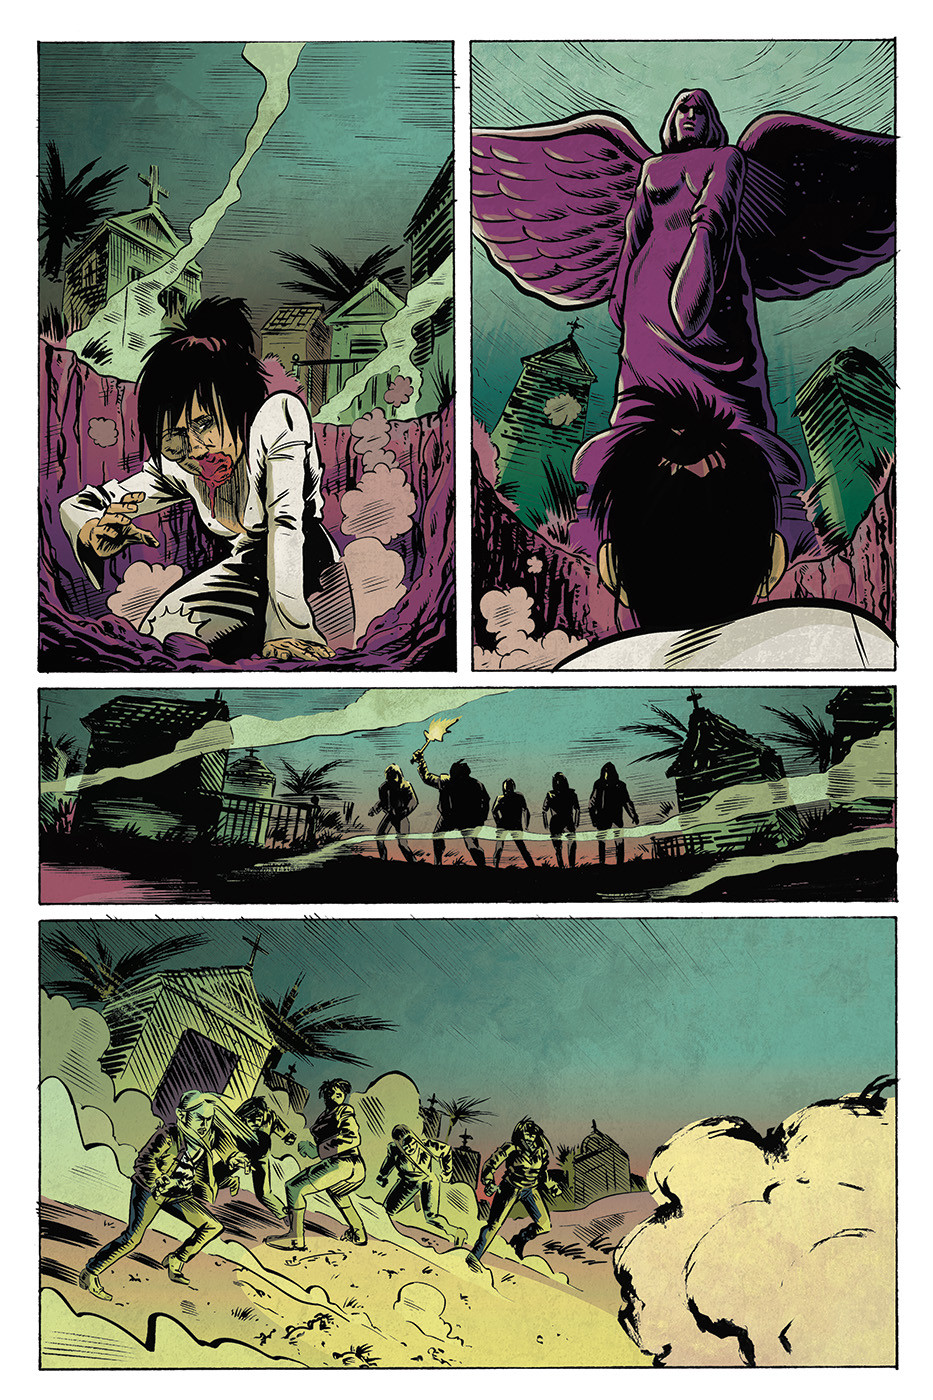 Grindhouse Fairytales Issue #1 - Colouring